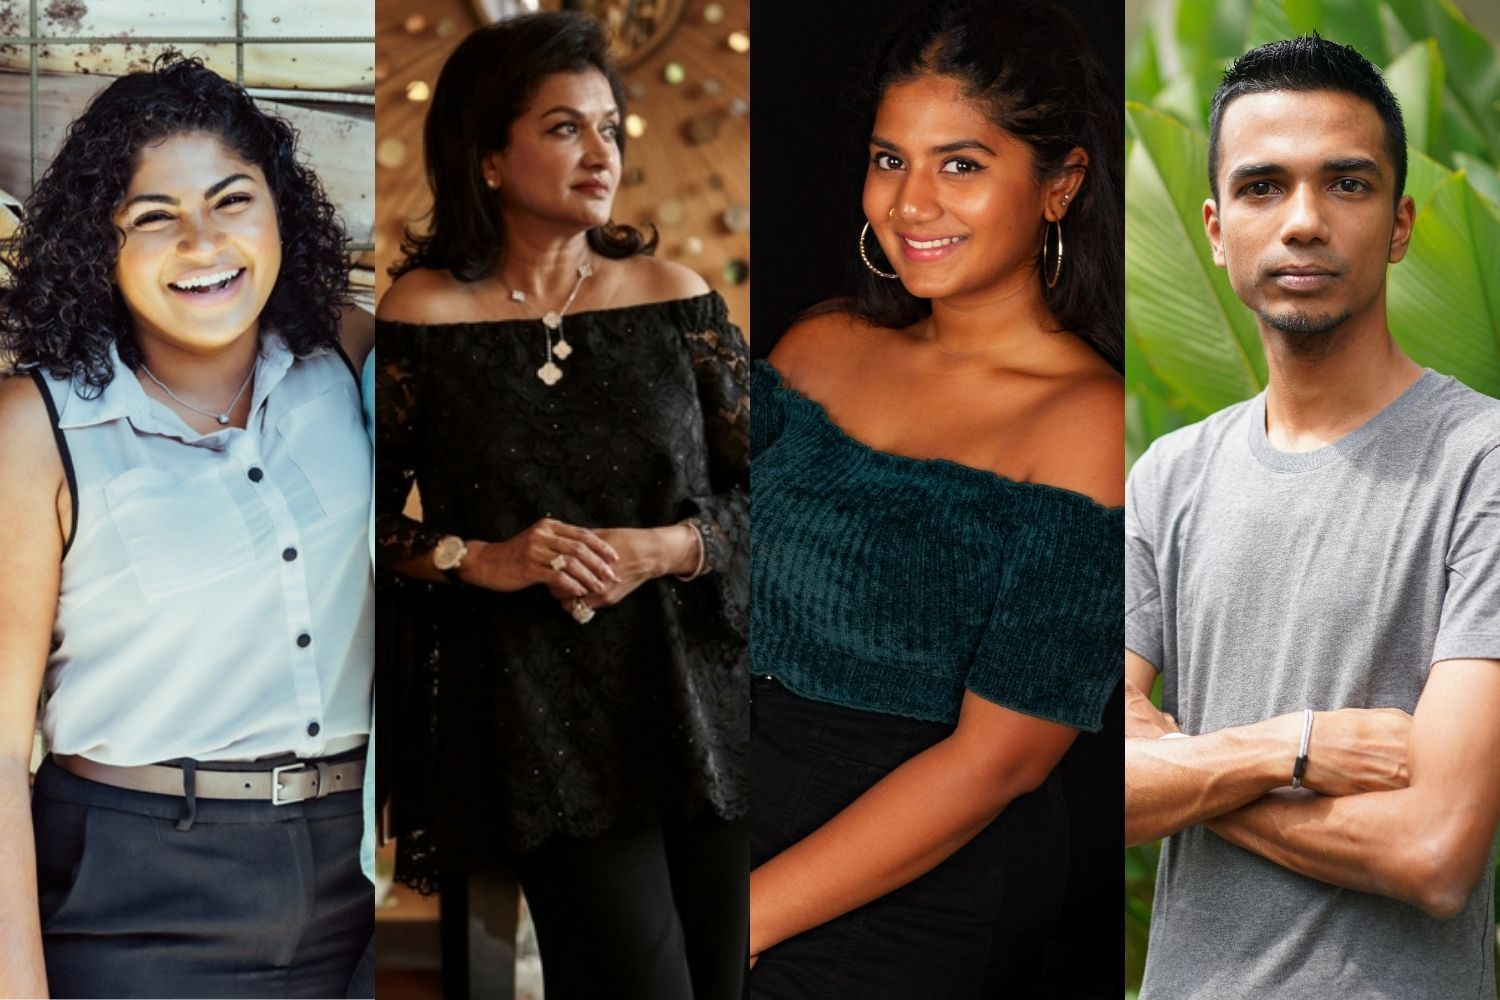 Deepavali 2020: How These 5 Individuals Will Be Celebrating The Festival Of Lights This Year